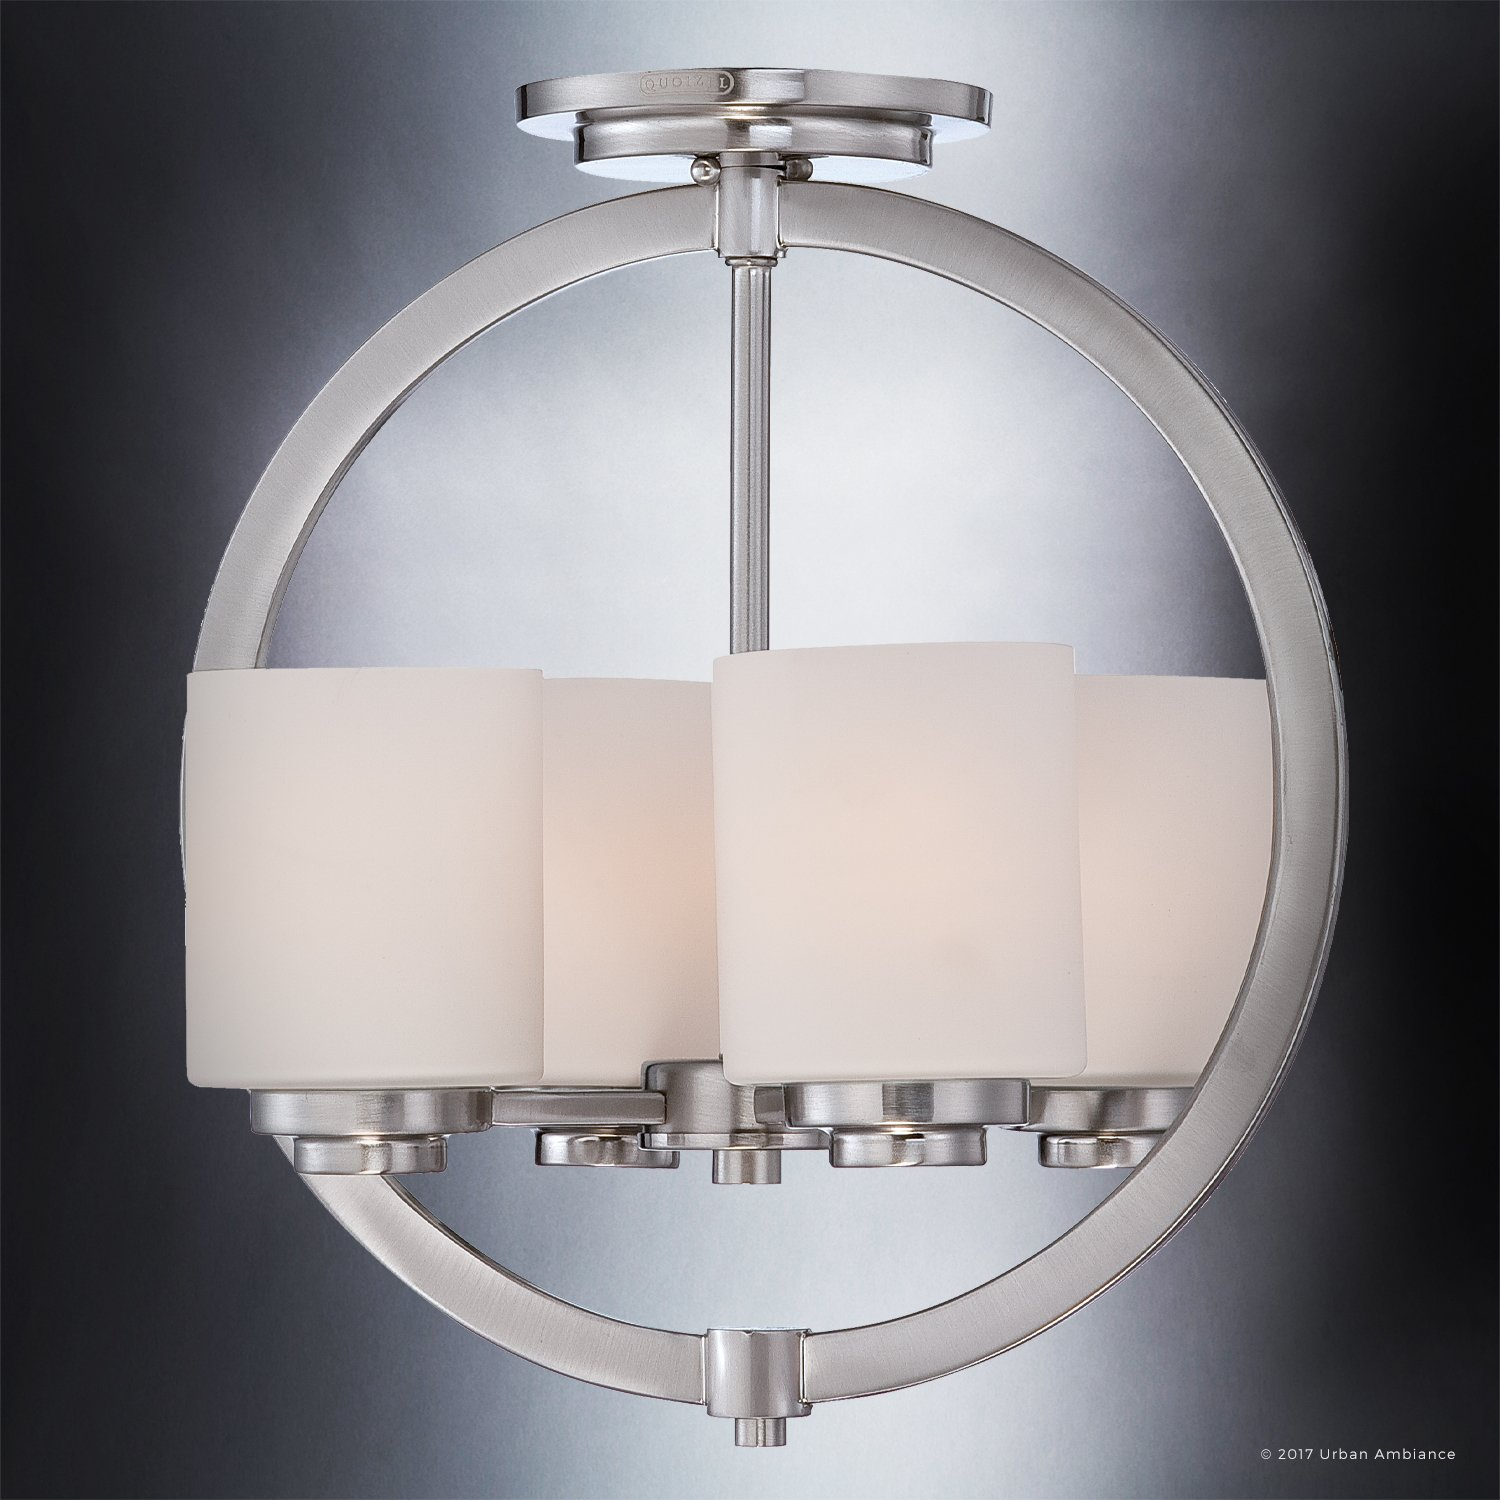 Luxury Contemporary Semi-Flush Ceiling Light, Medium Size: 15''H x 14''W, with Traditional Style Elements, Globe Design, Pretty Brushed Nickel Finish and Opal Etched Glass, UQL2171 by Urban Ambiance by Urban Ambiance (Image #3)